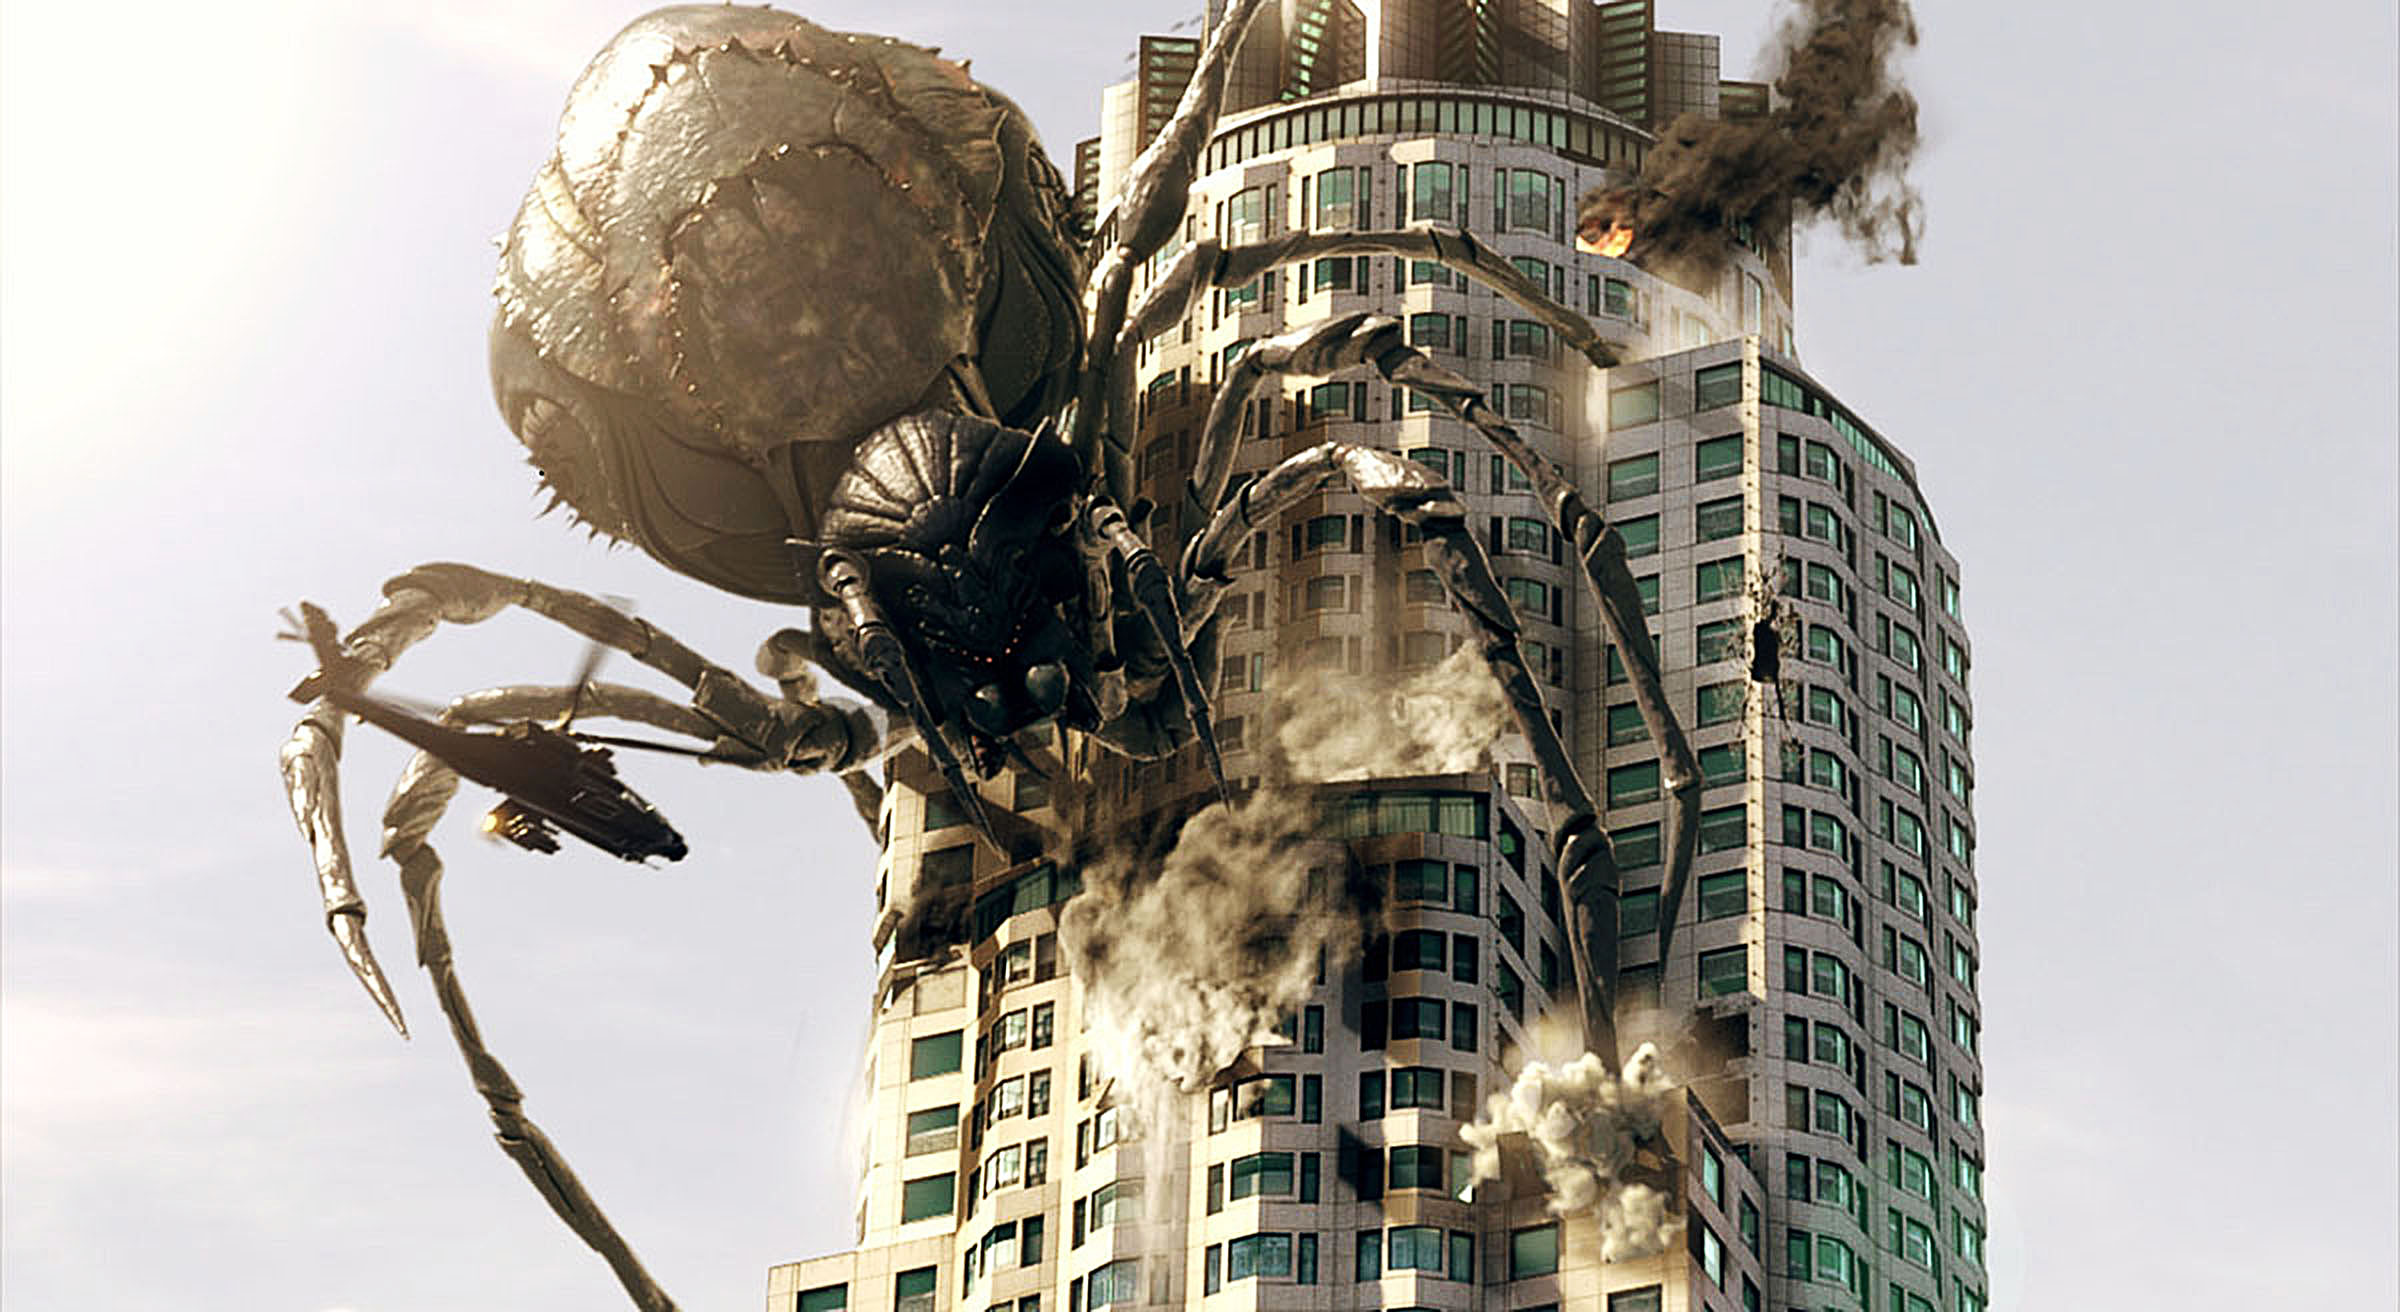 Giant spiders amok in L.A. in Big Ass Spider! (2013)